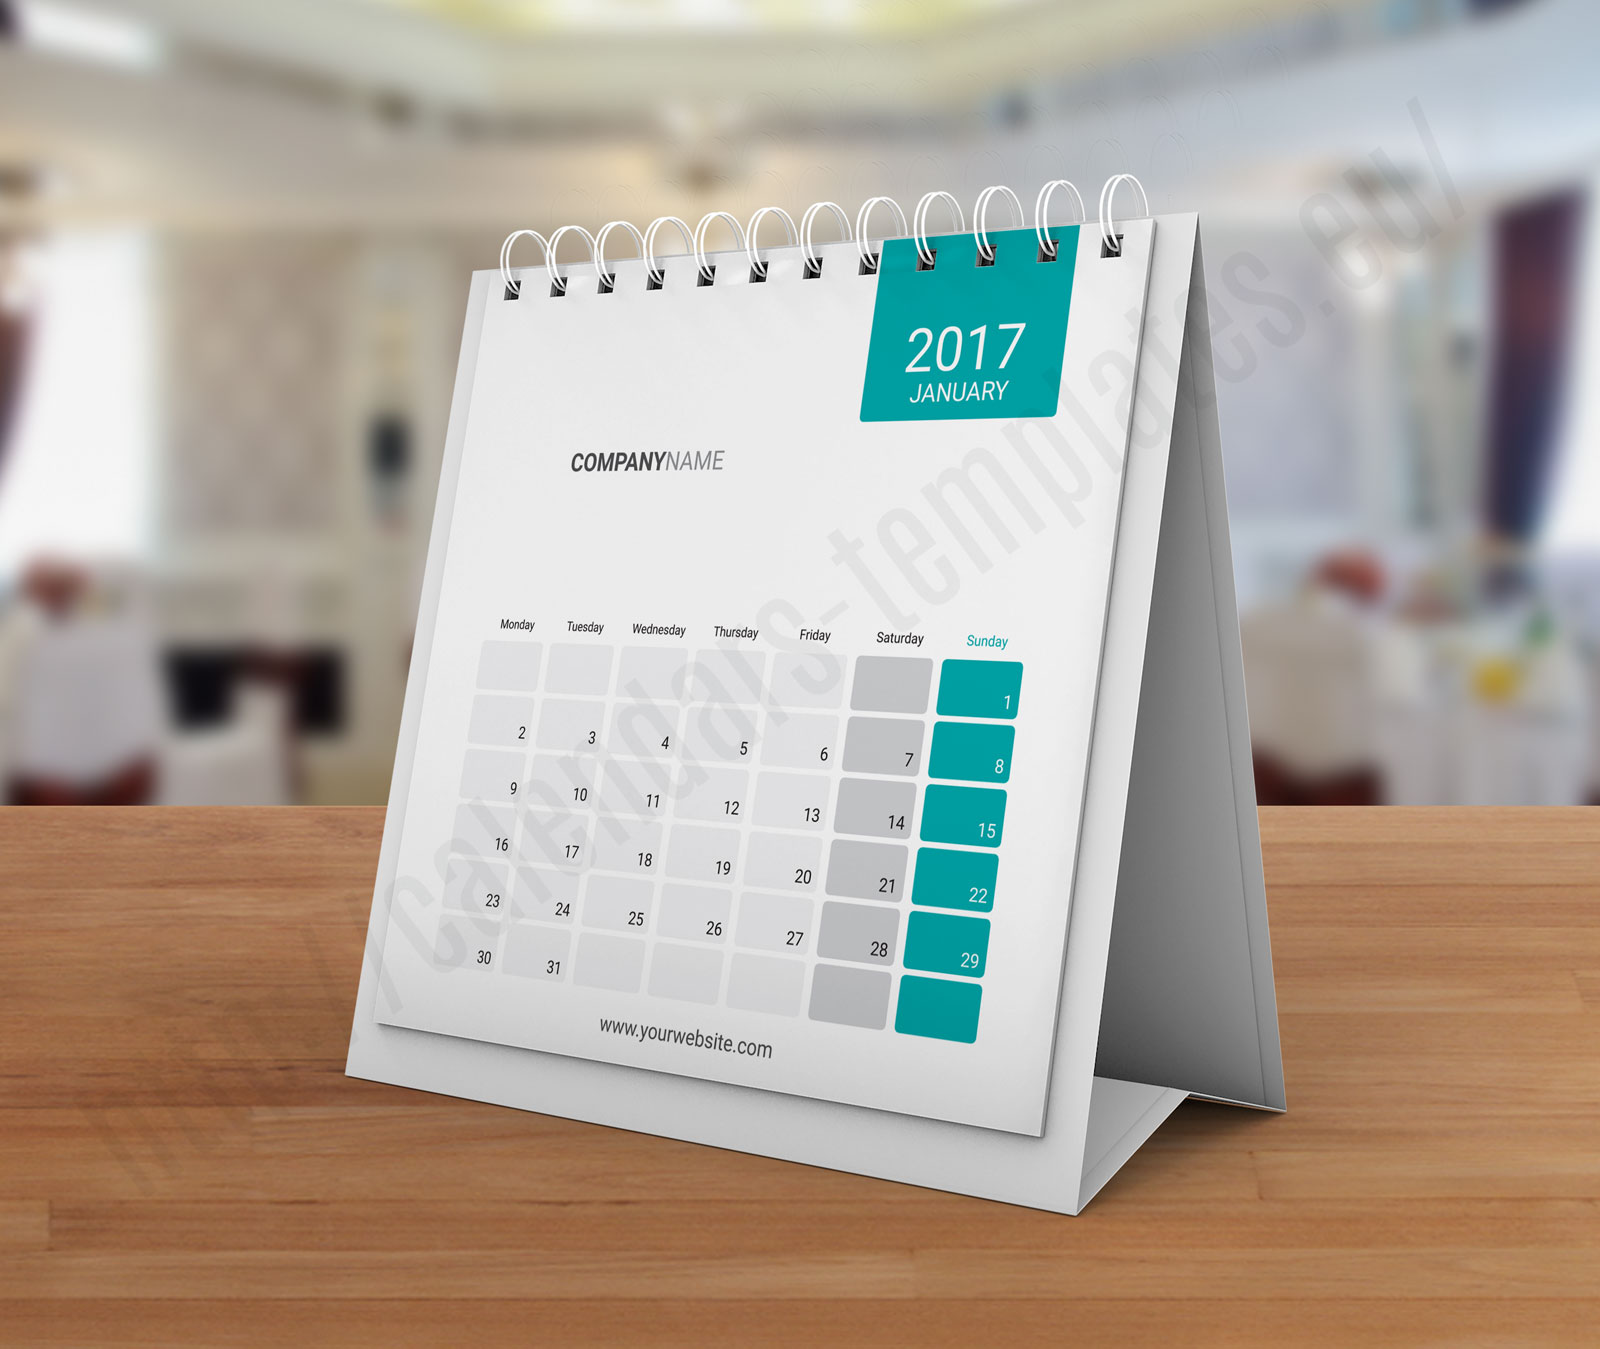 Sample Of Calendar Design : Desk tent calendar kb w template